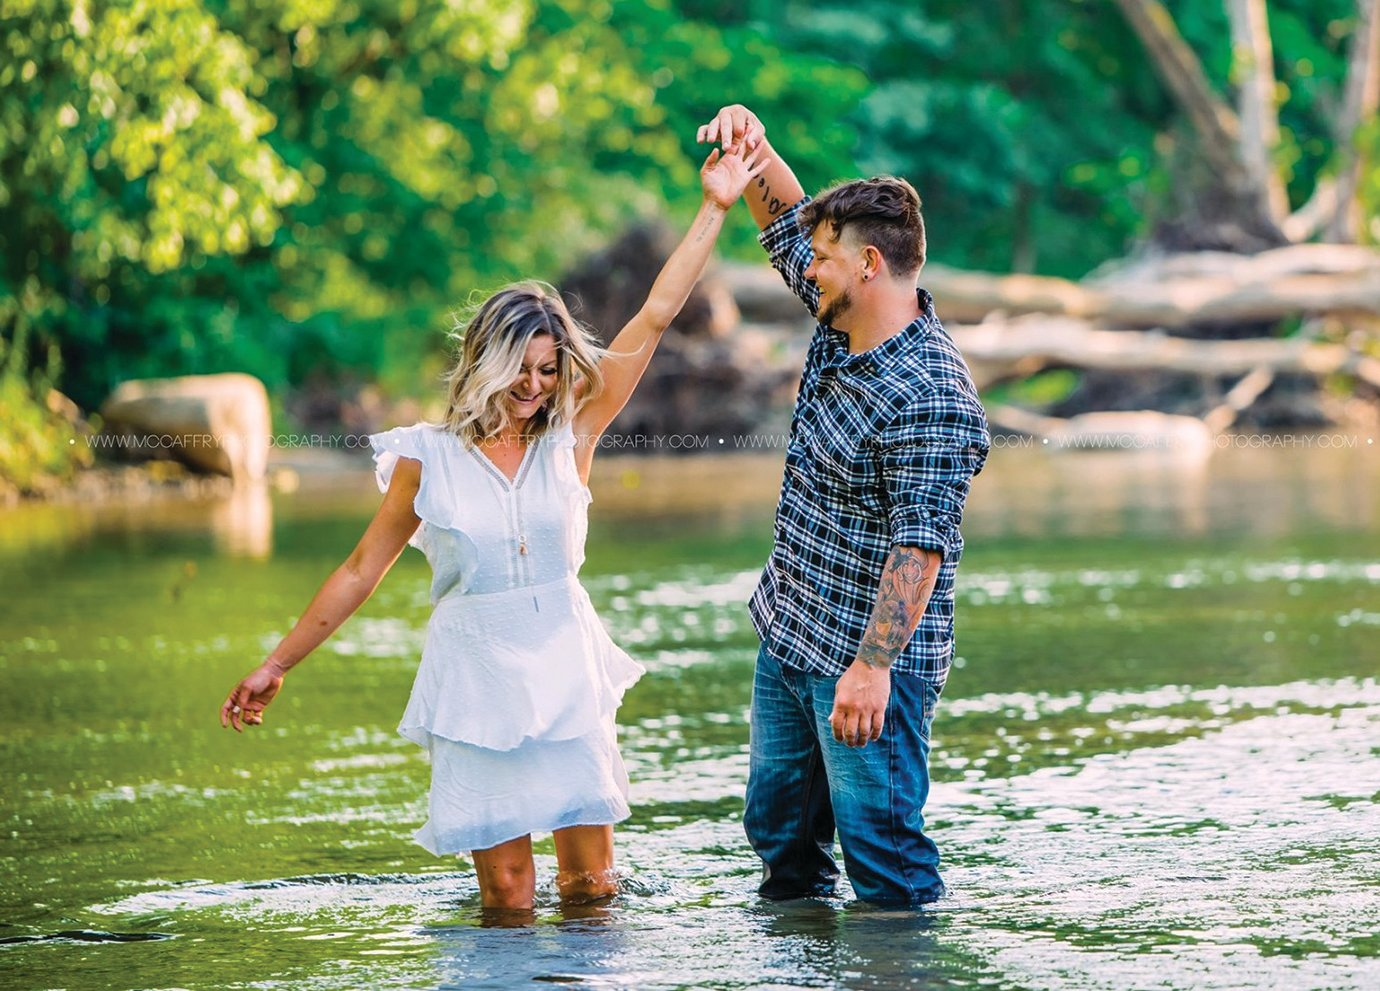 Karmon Waite and Daniel Allen, the subjects of a blind date photoshoot gone viral, test the waters and each other under the Darlington Covered Bridge in June.